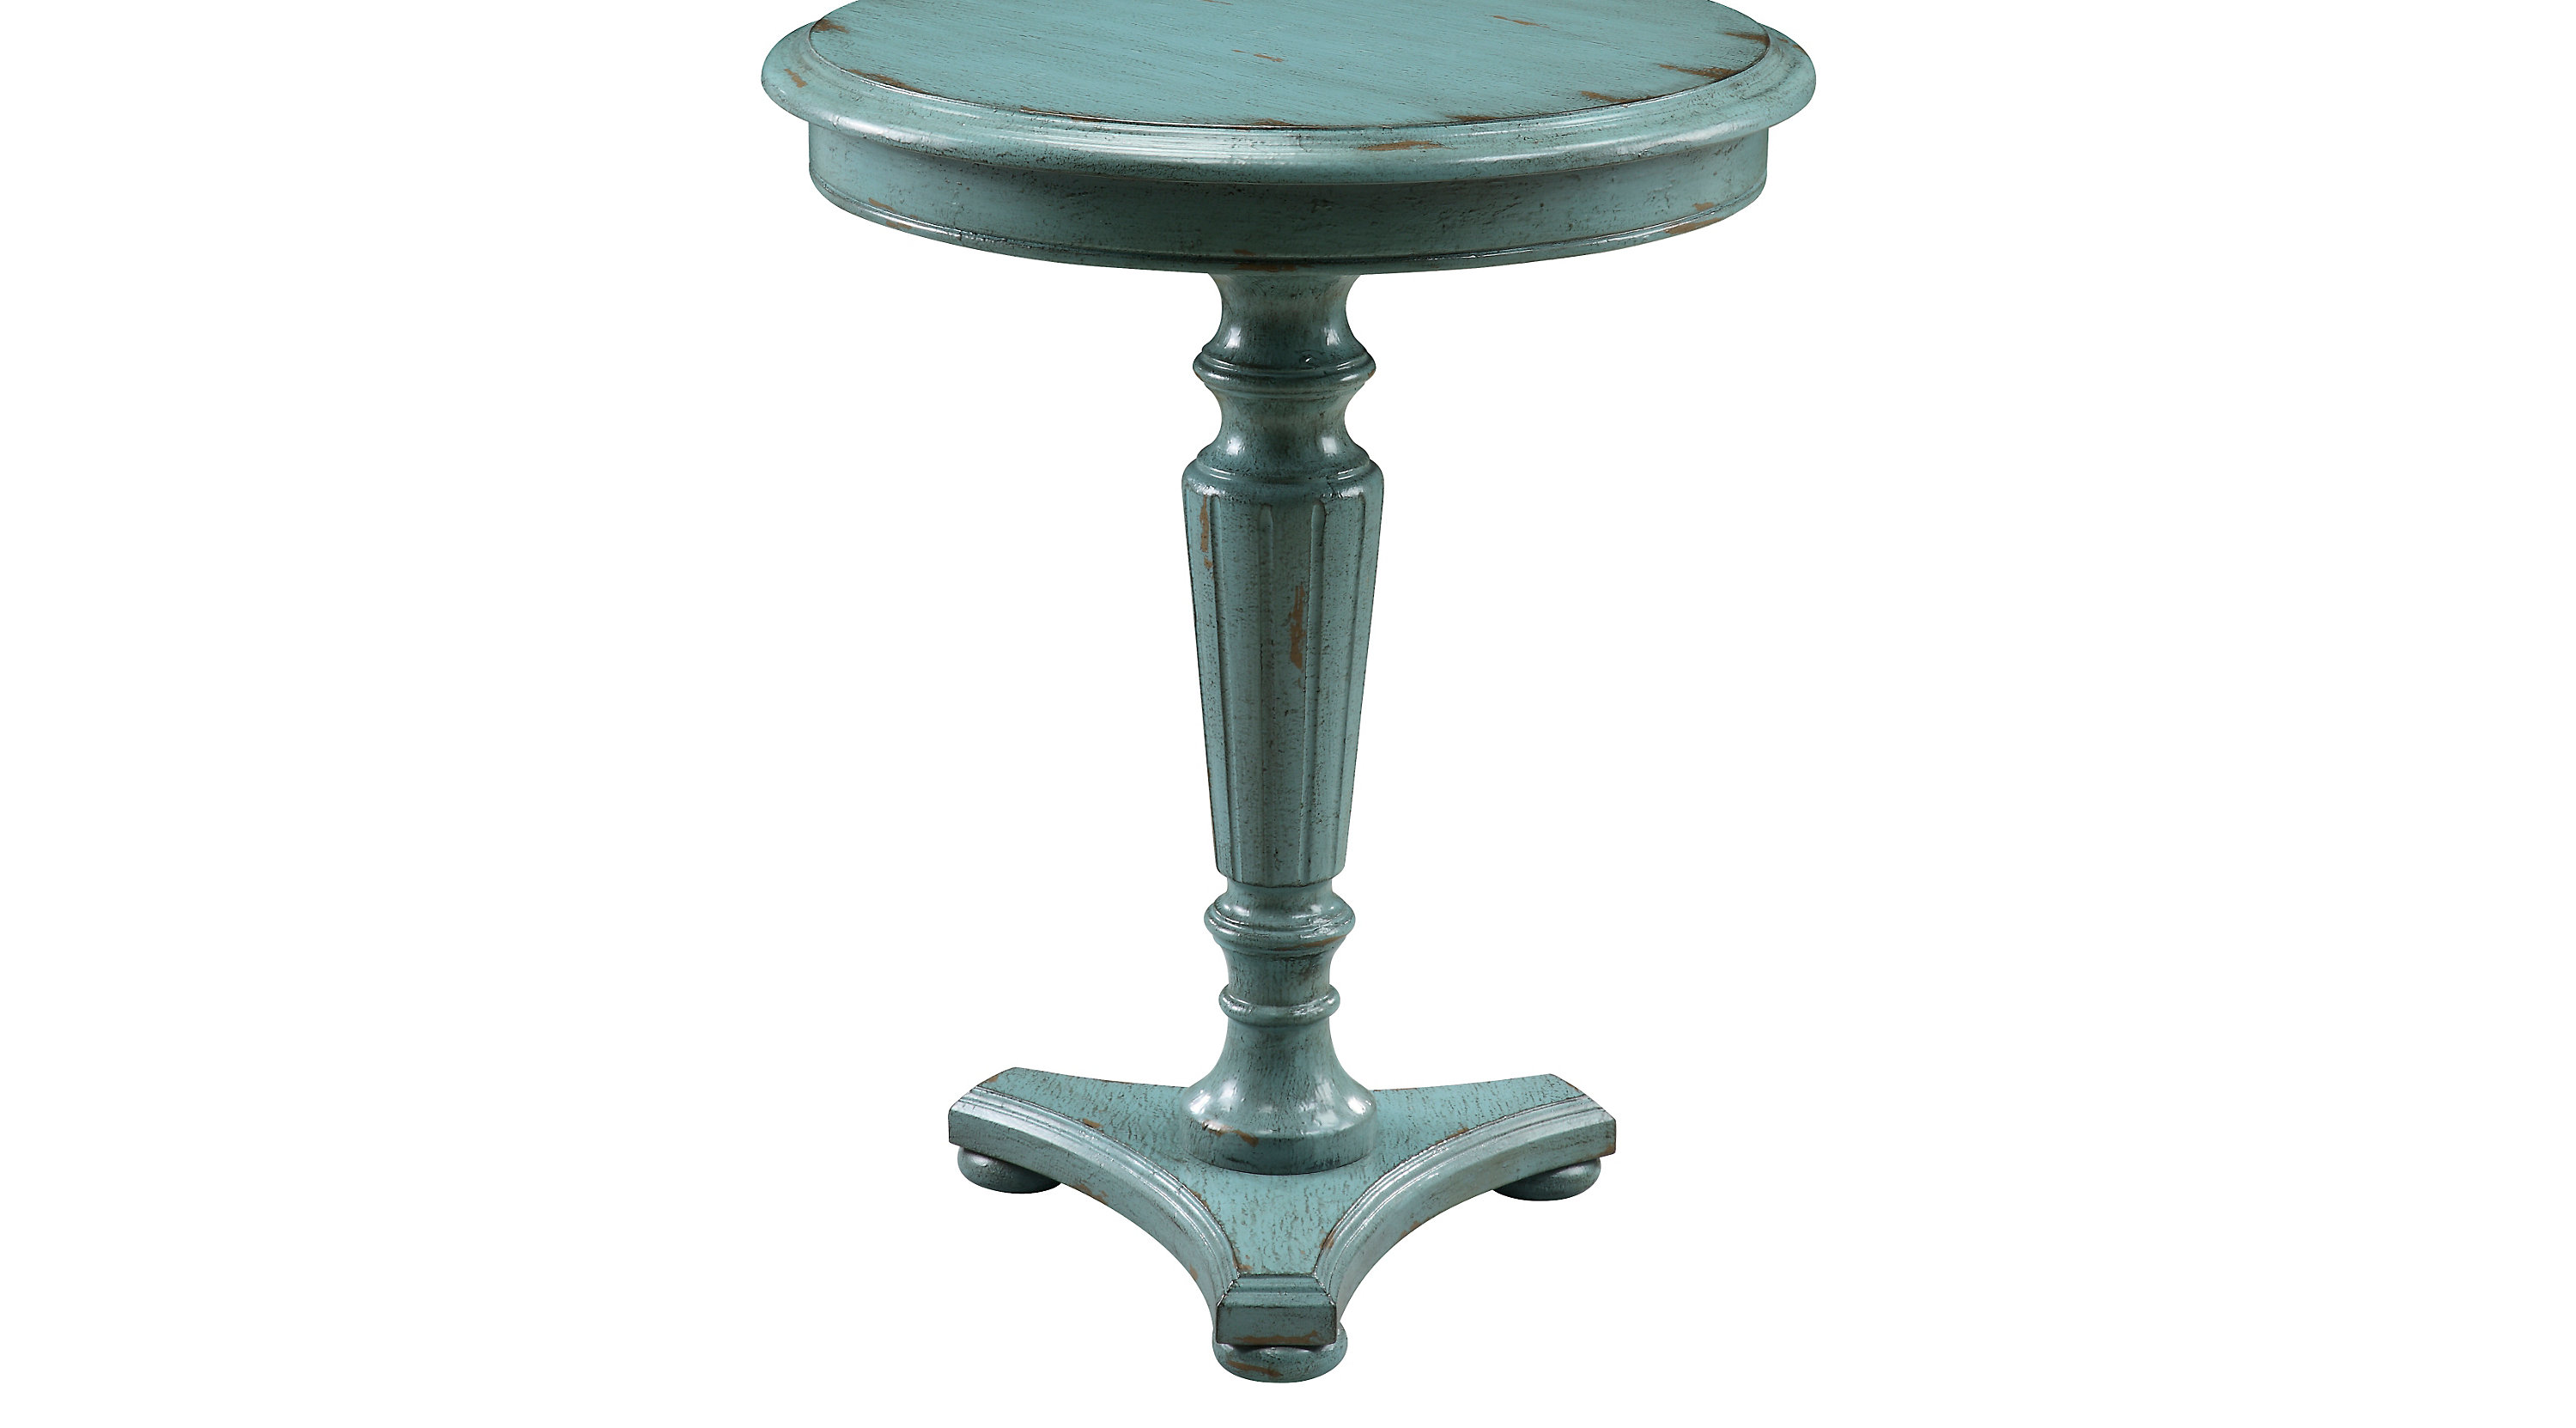 pedestal accent tables side nunnelly blue table metal shaker end target white round bedside patio beverage cooler bar dining set striped umbrellas next armchairs threshold wicker